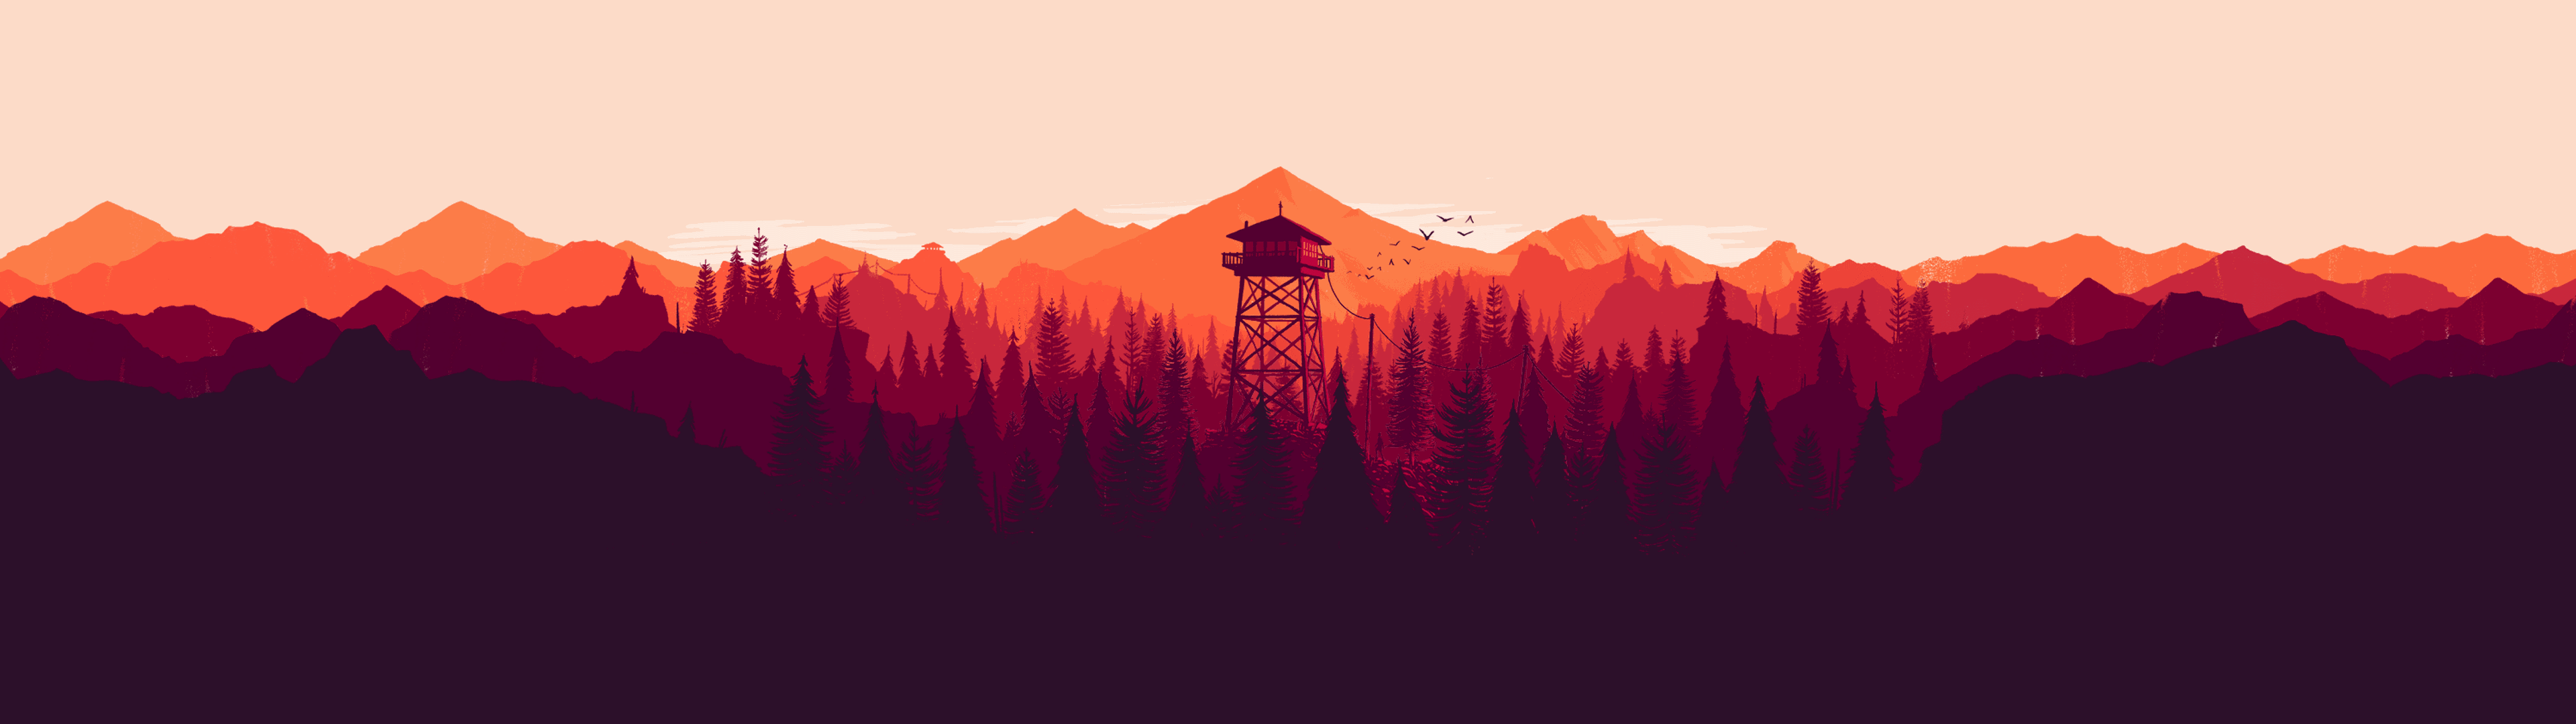 3840x1080 Wallpapers